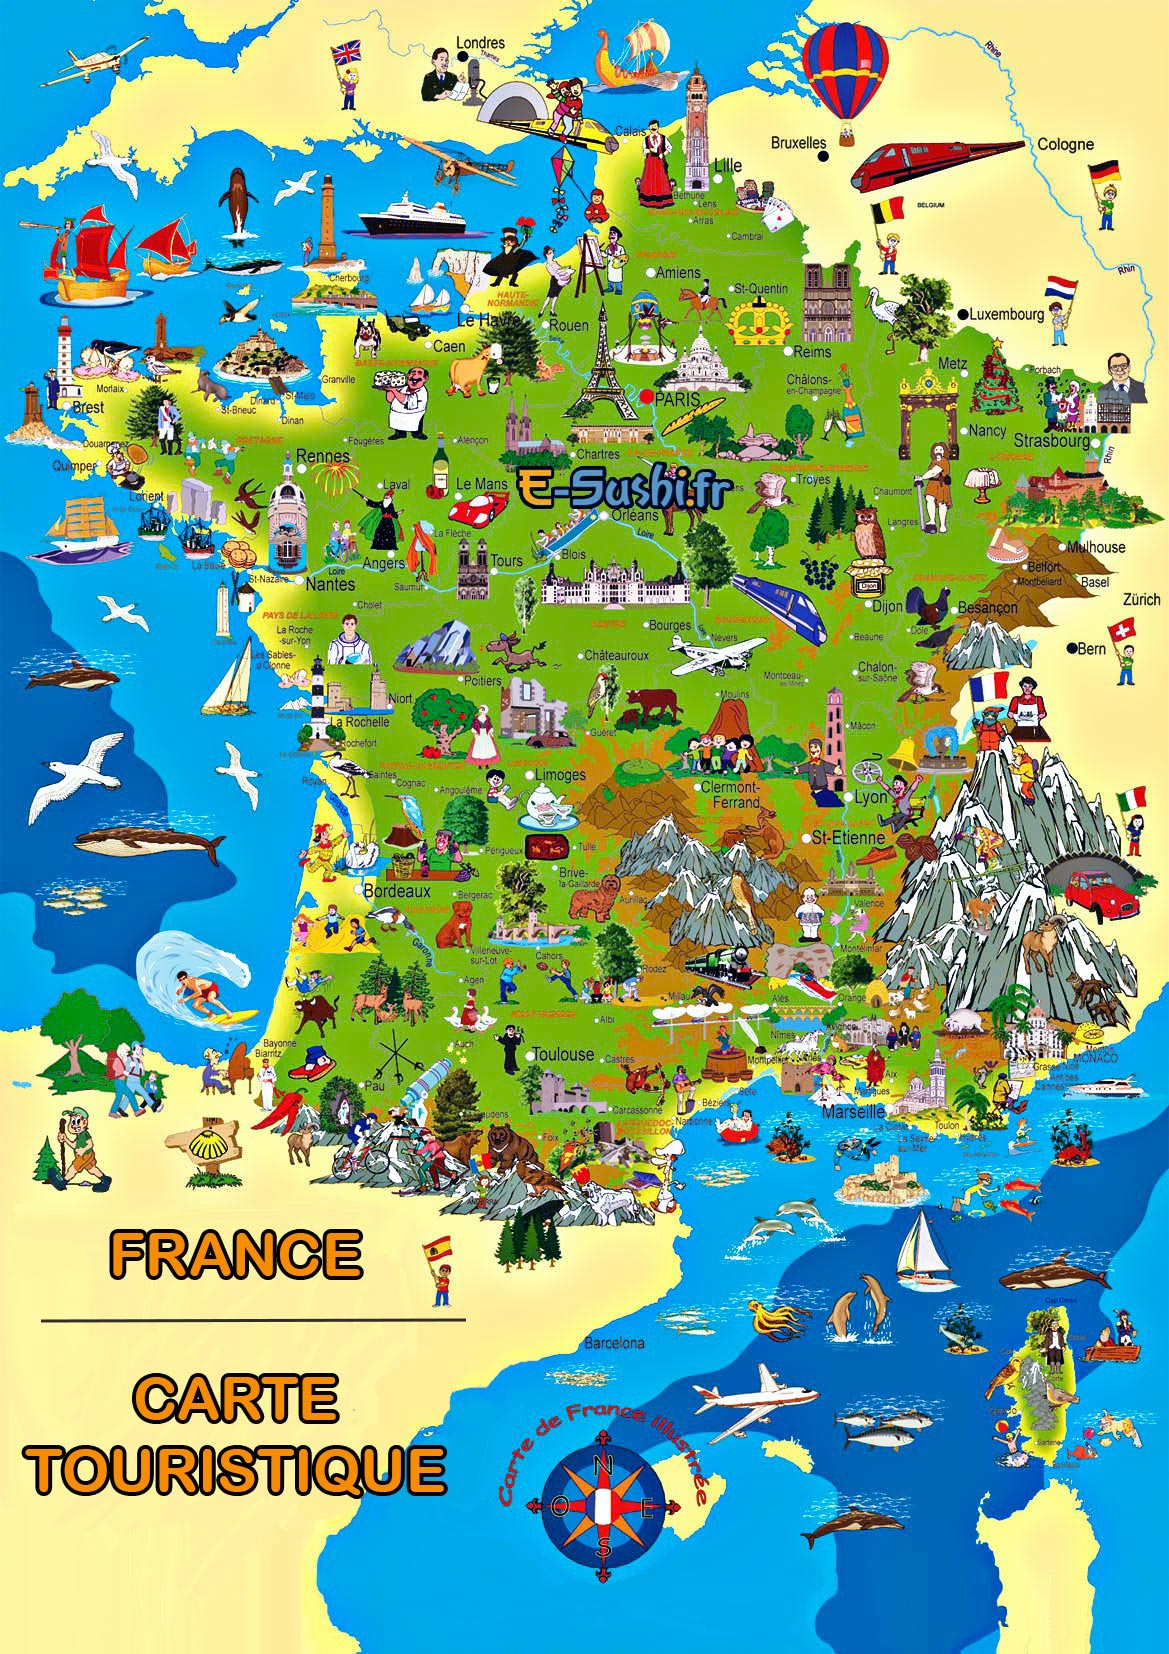 carte touristique france sud - Photo